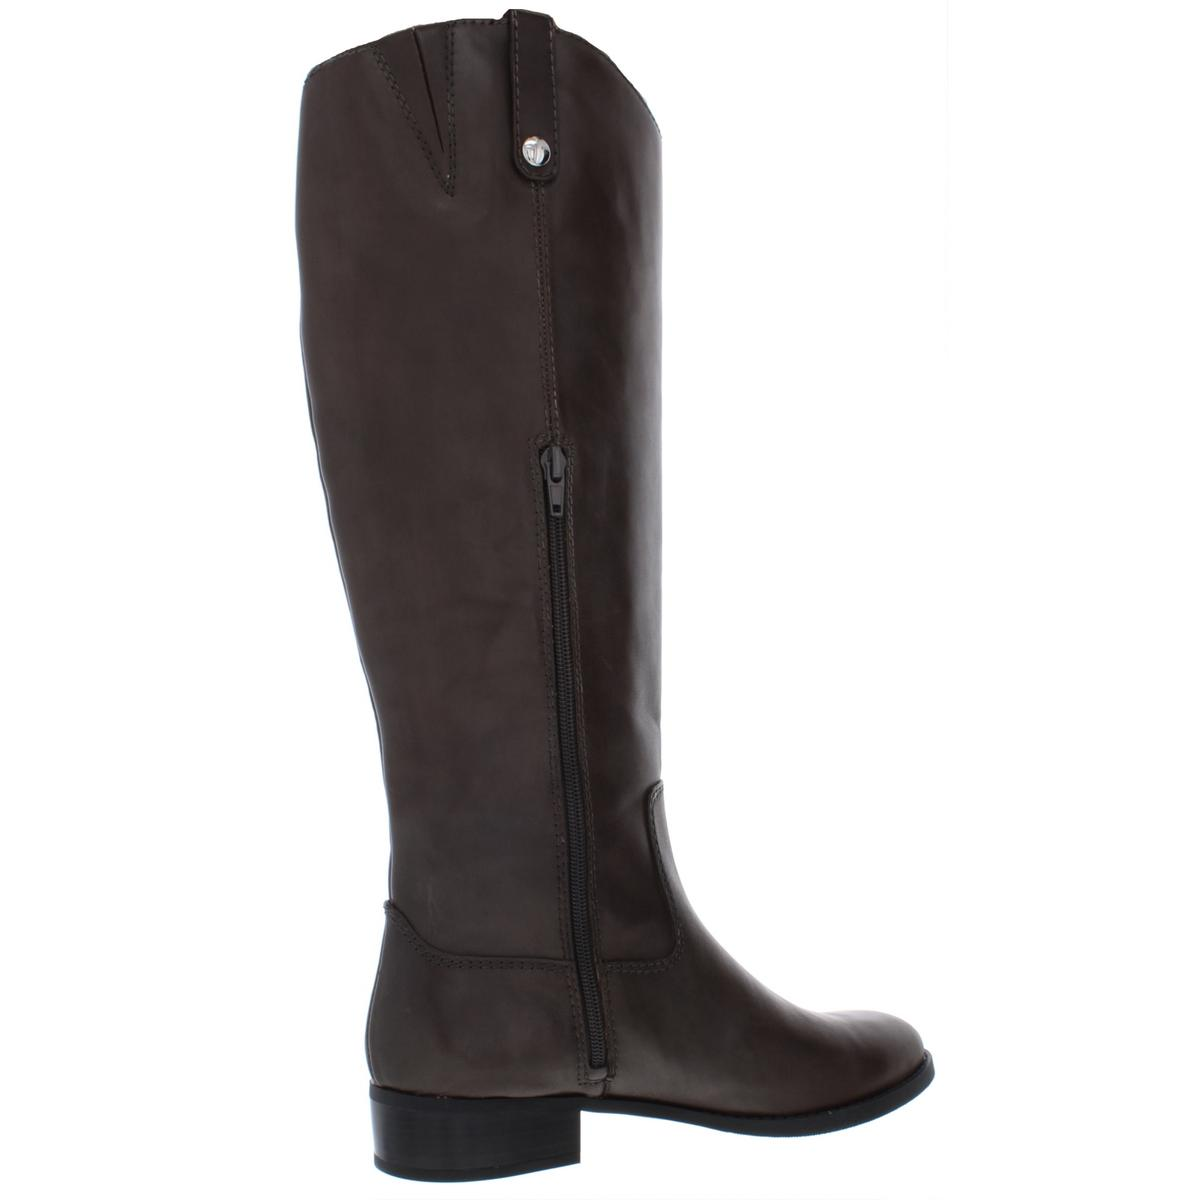 INC-Womens-Fawne-Leather-Knee-High-Tall-Riding-Boots-Shoes-BHFO-5020 thumbnail 13